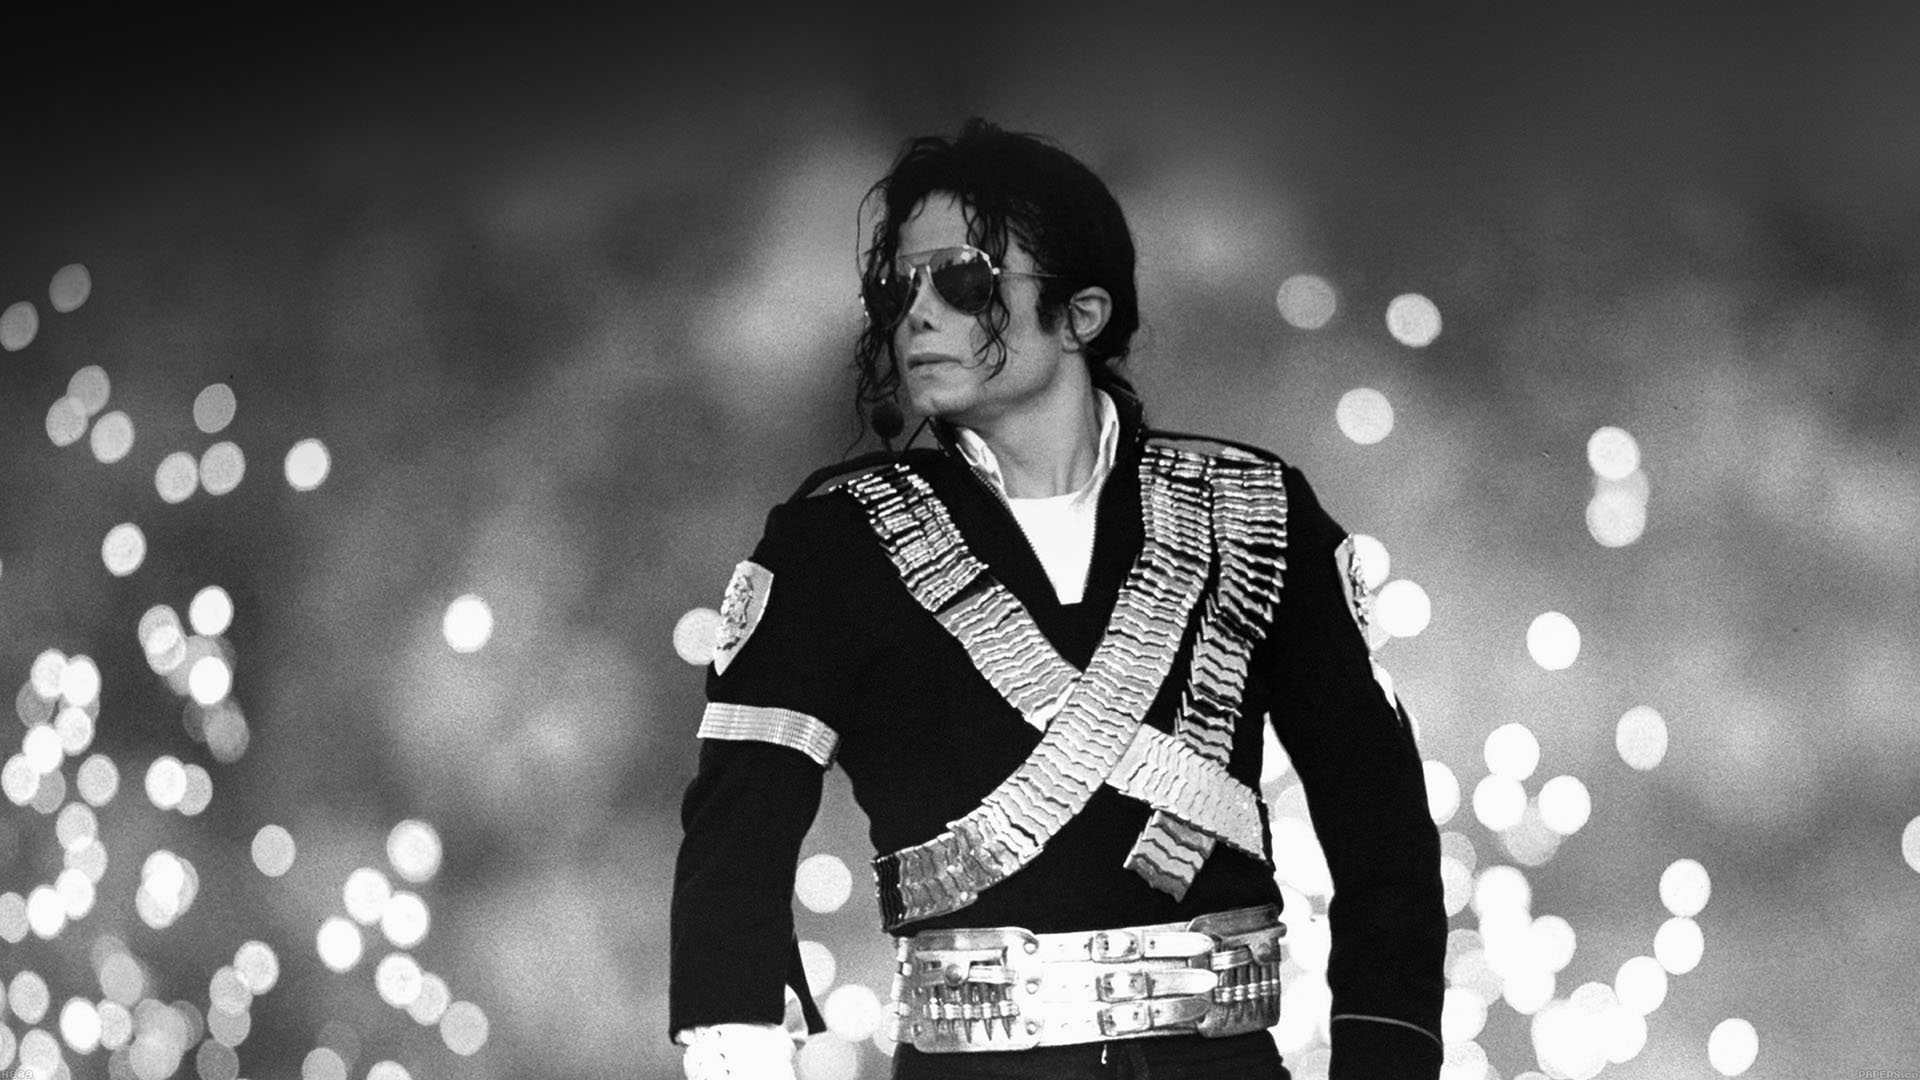 Fall Wallpaper For Desktop 1920x1080 Hc09 Michael Jackson Bw Concert King Of Pop Papers Co